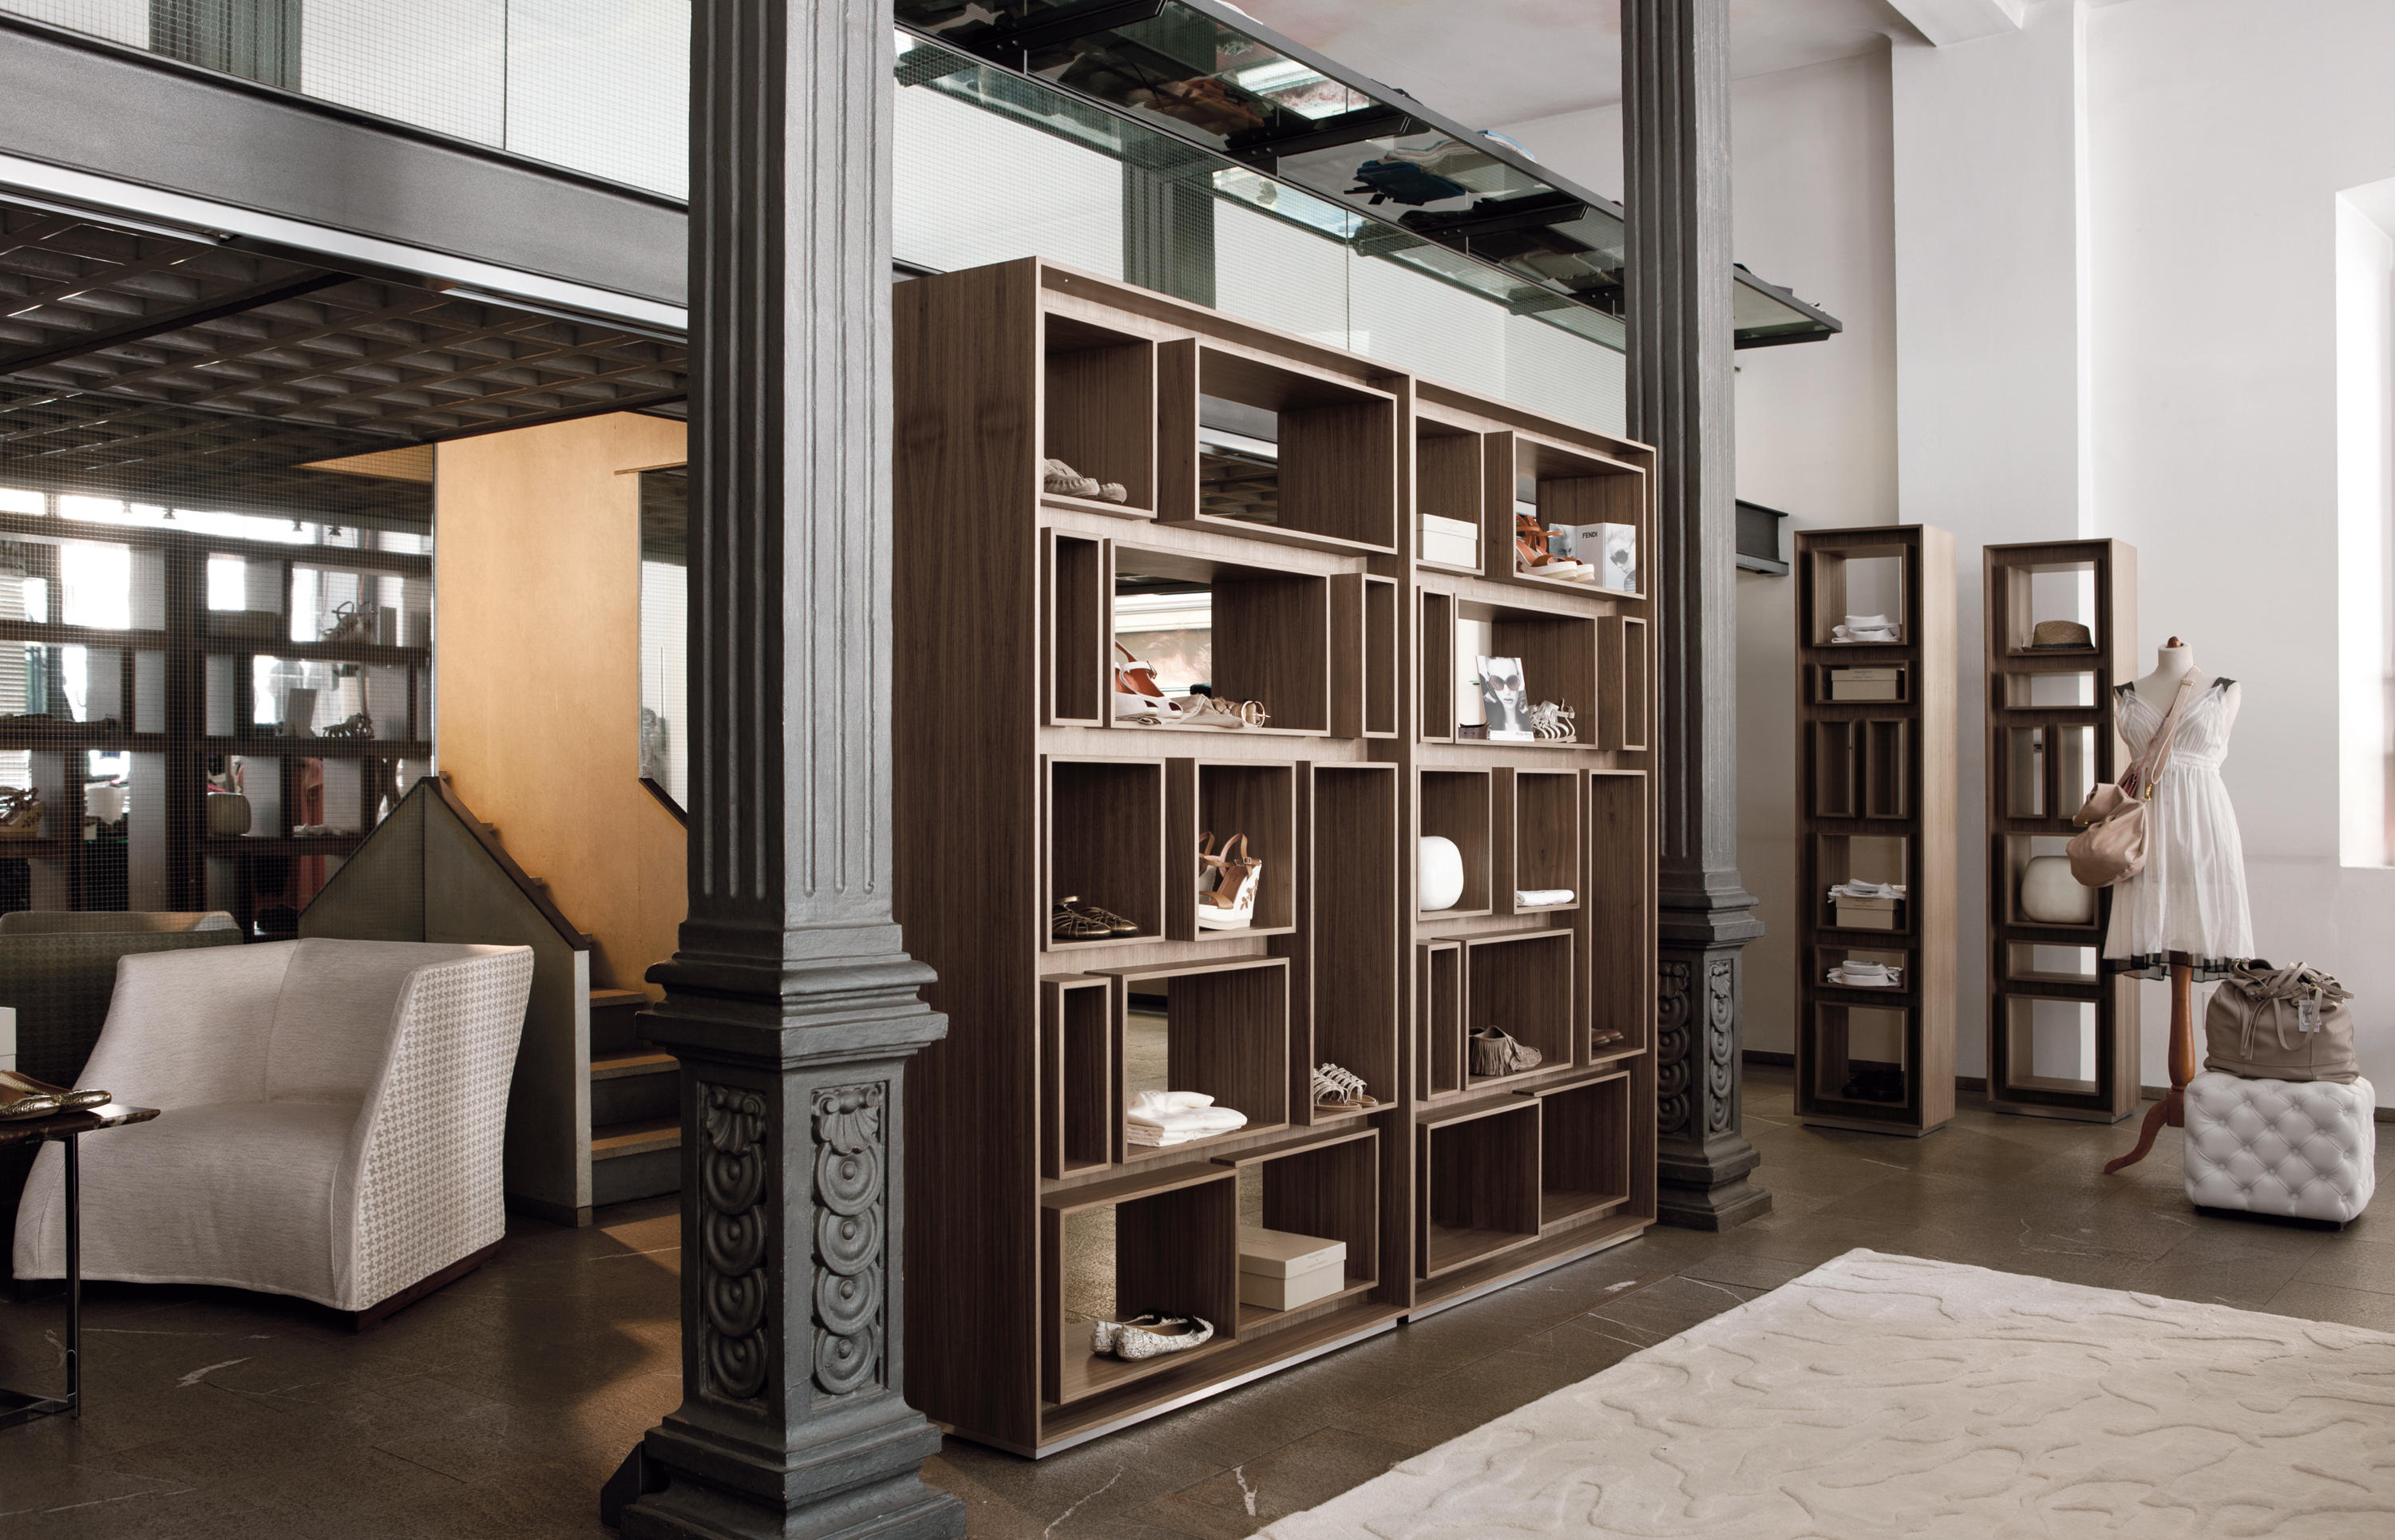 First Shelving From Porada Architonic